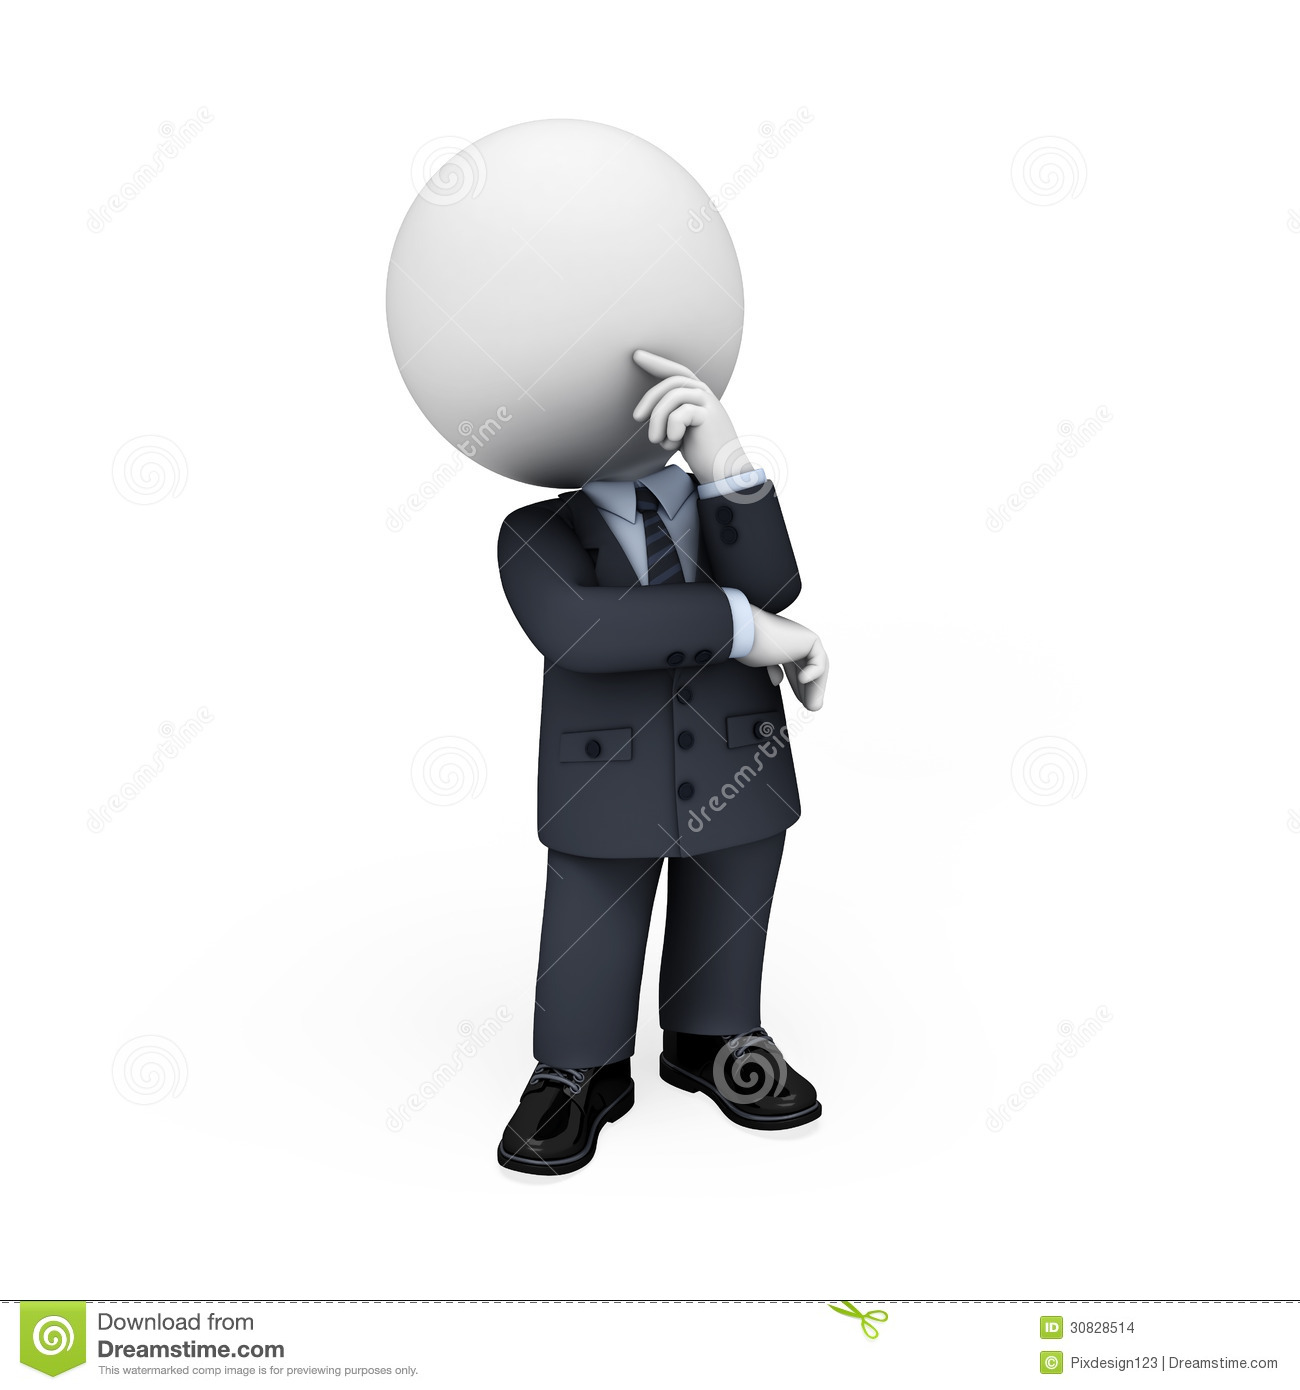 d-white-people-as-business-man-rendered-illustration-30828514.jpg